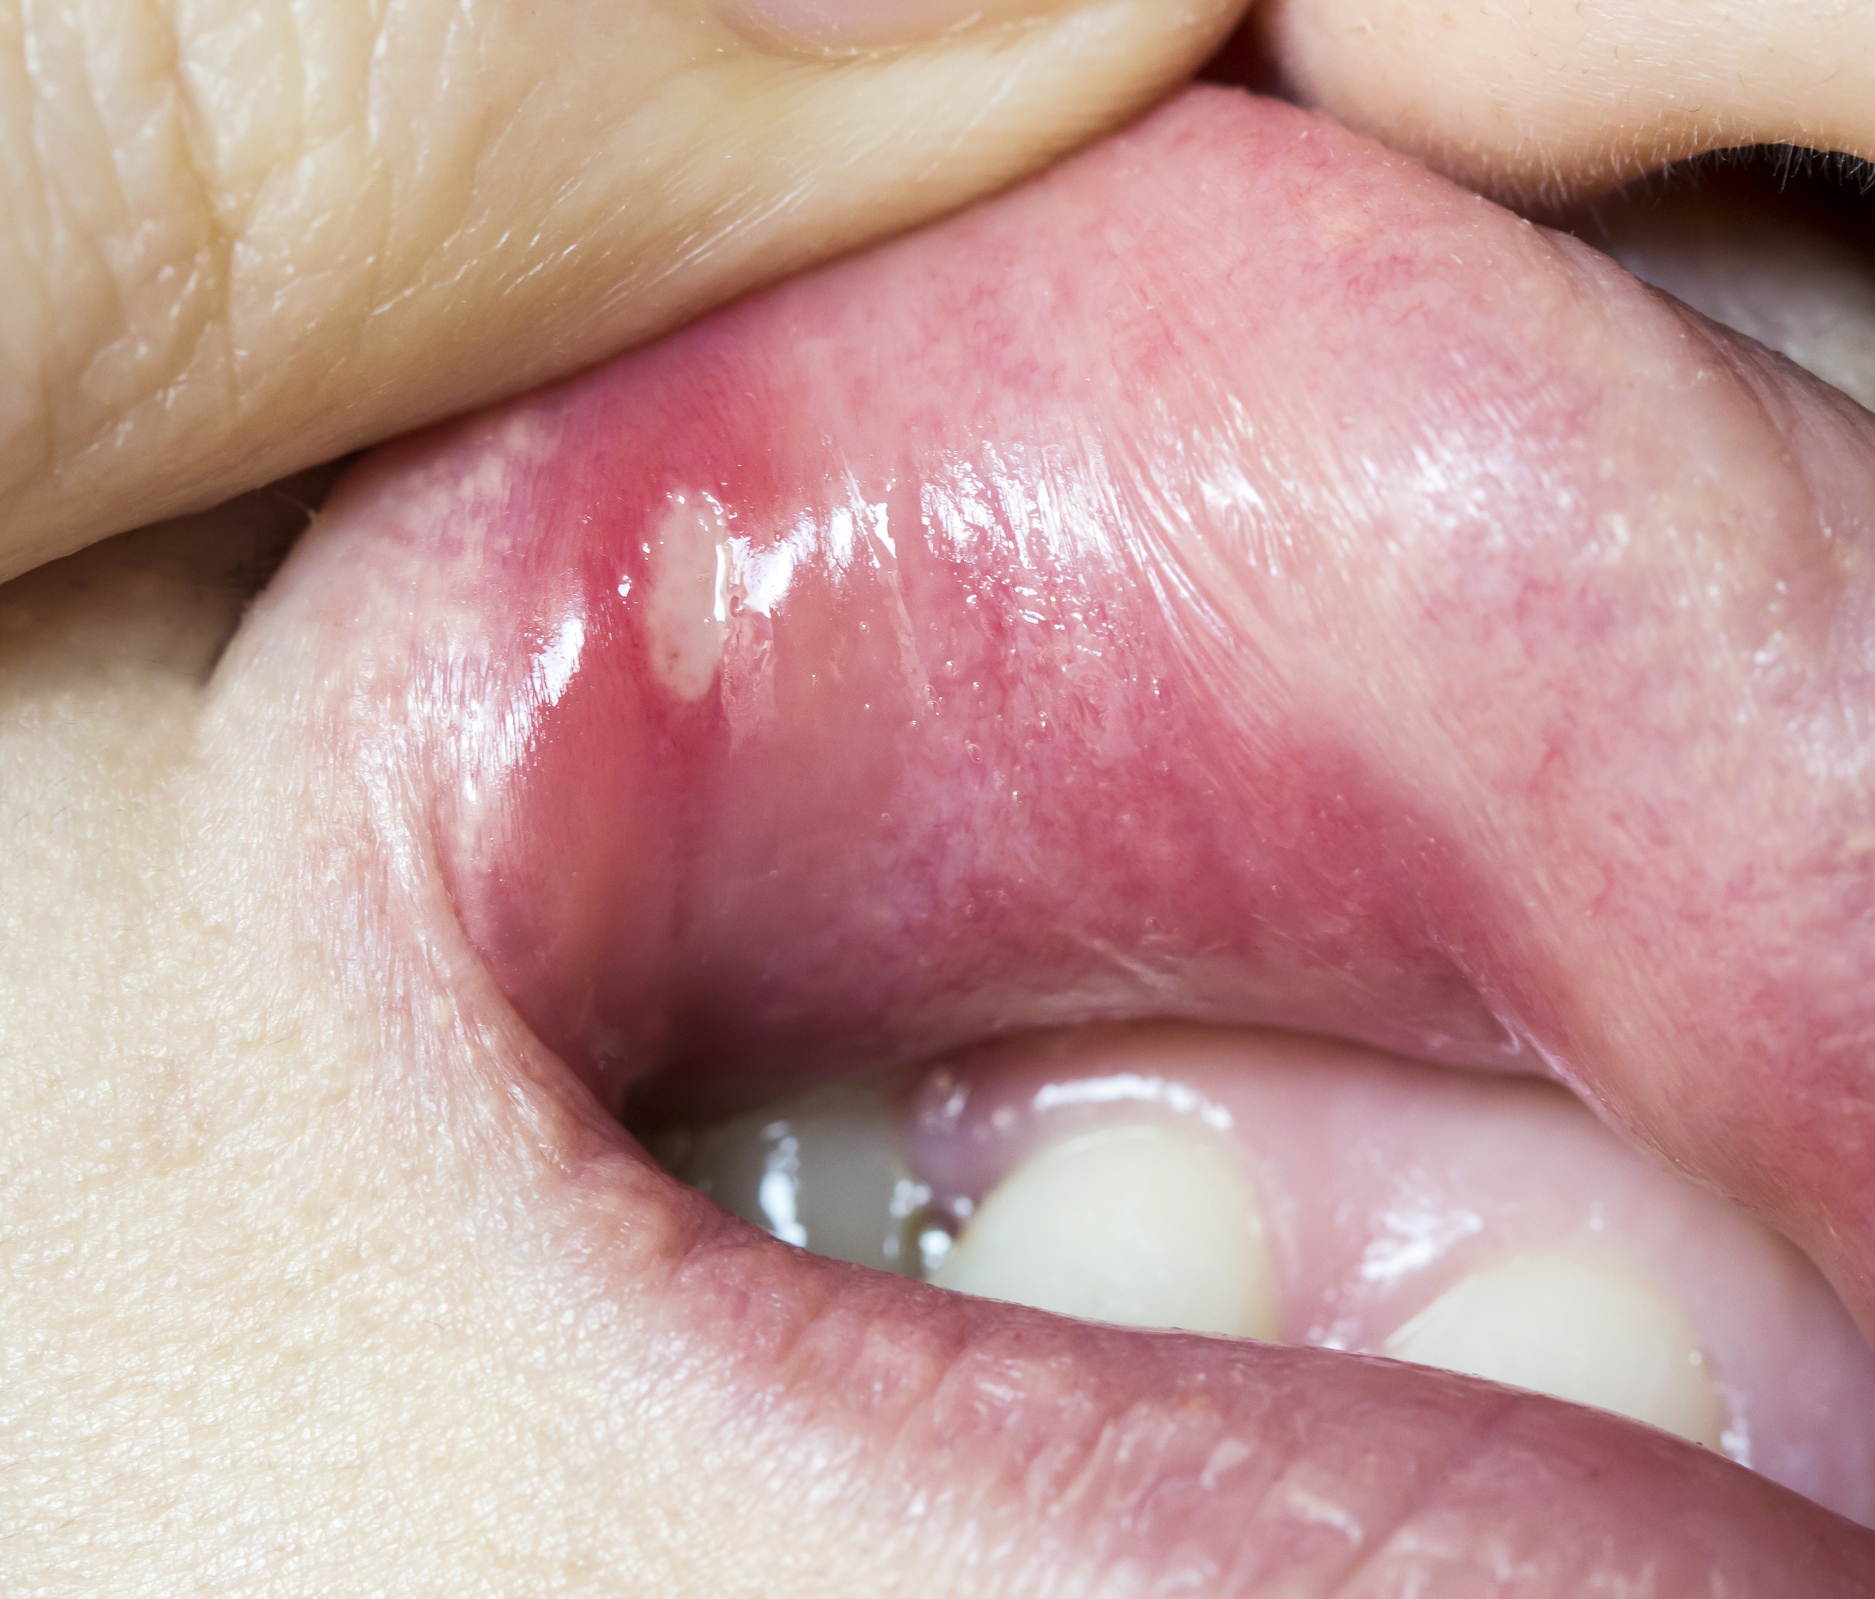 hpv in throat symptoms)